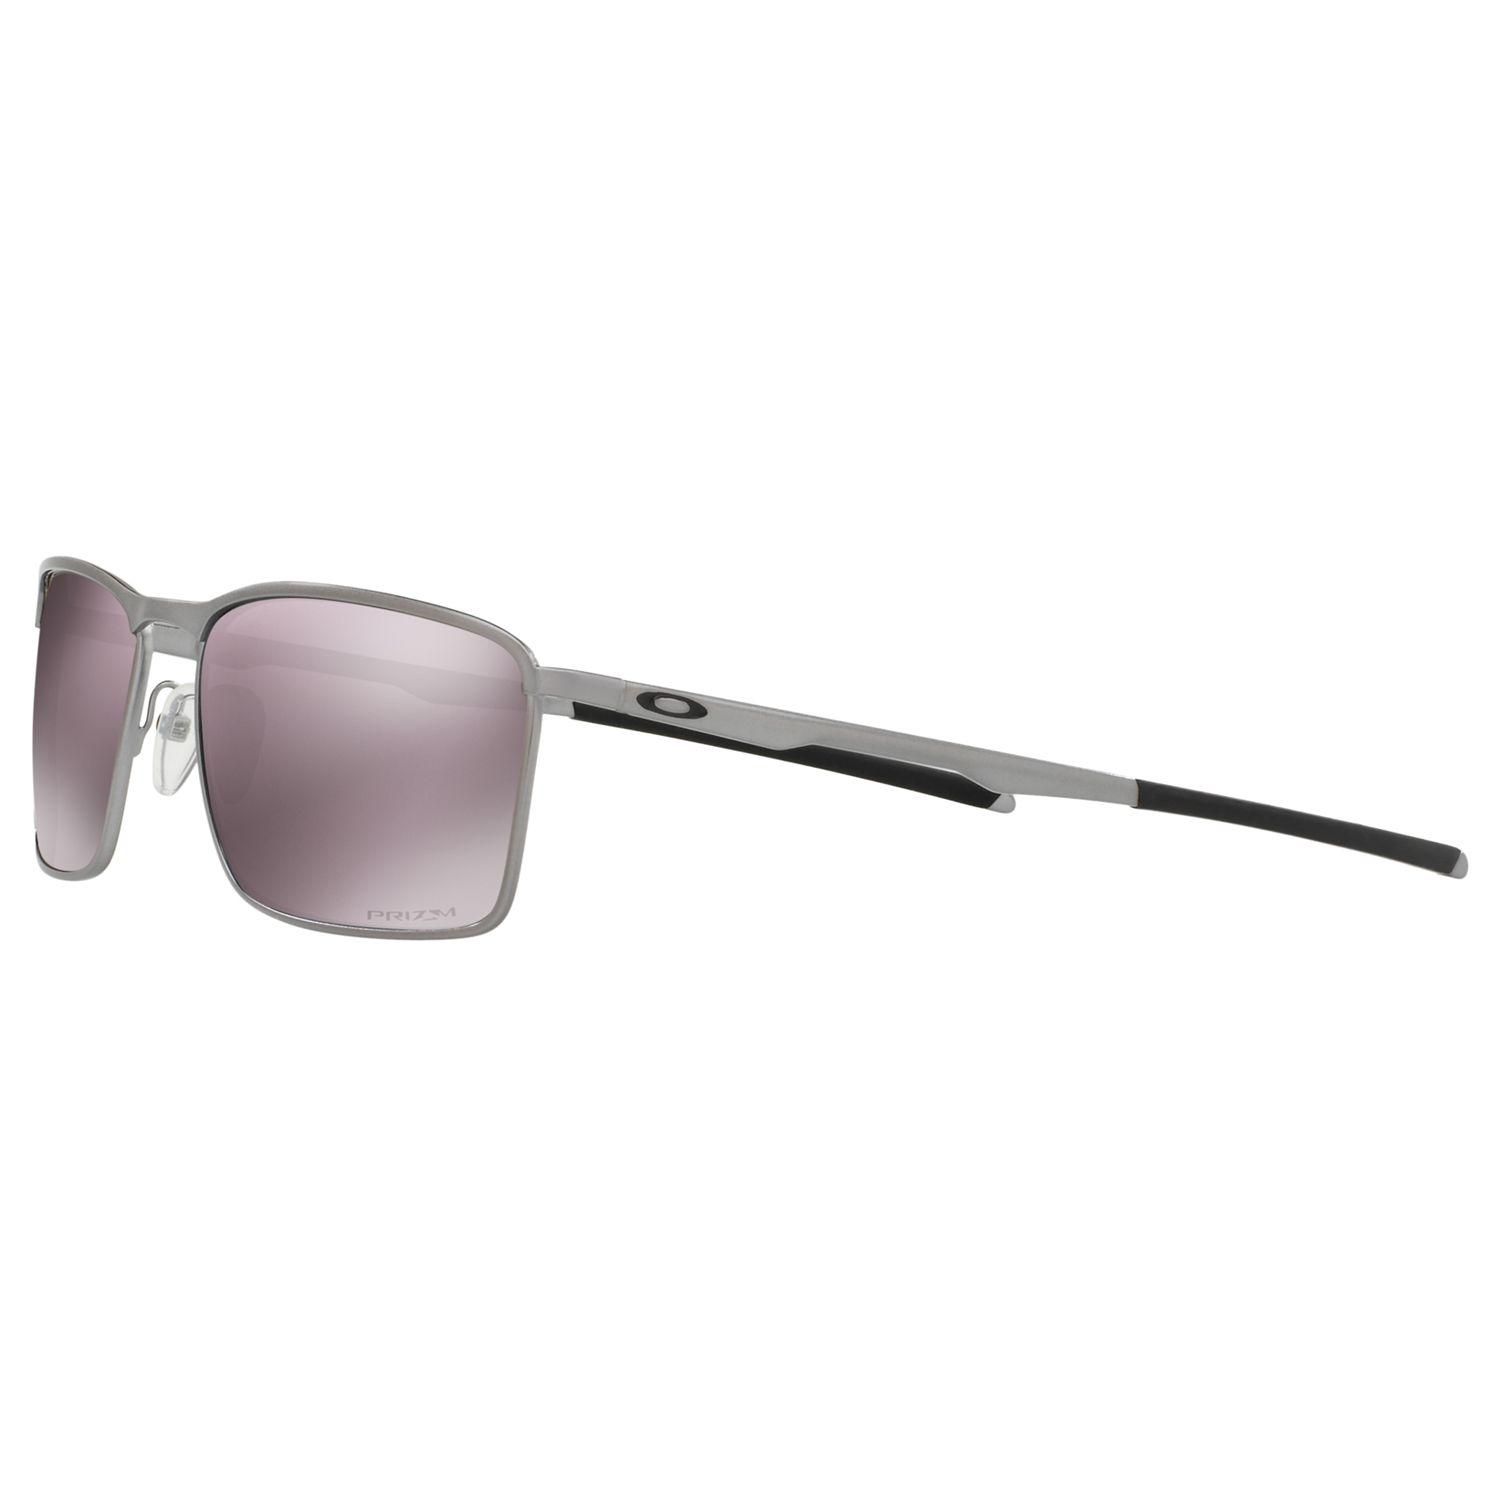 9d0ae1c856 Oakley Oo4106 Conductor 6 Prizm Polarised Rectangular Sunglasses in ...